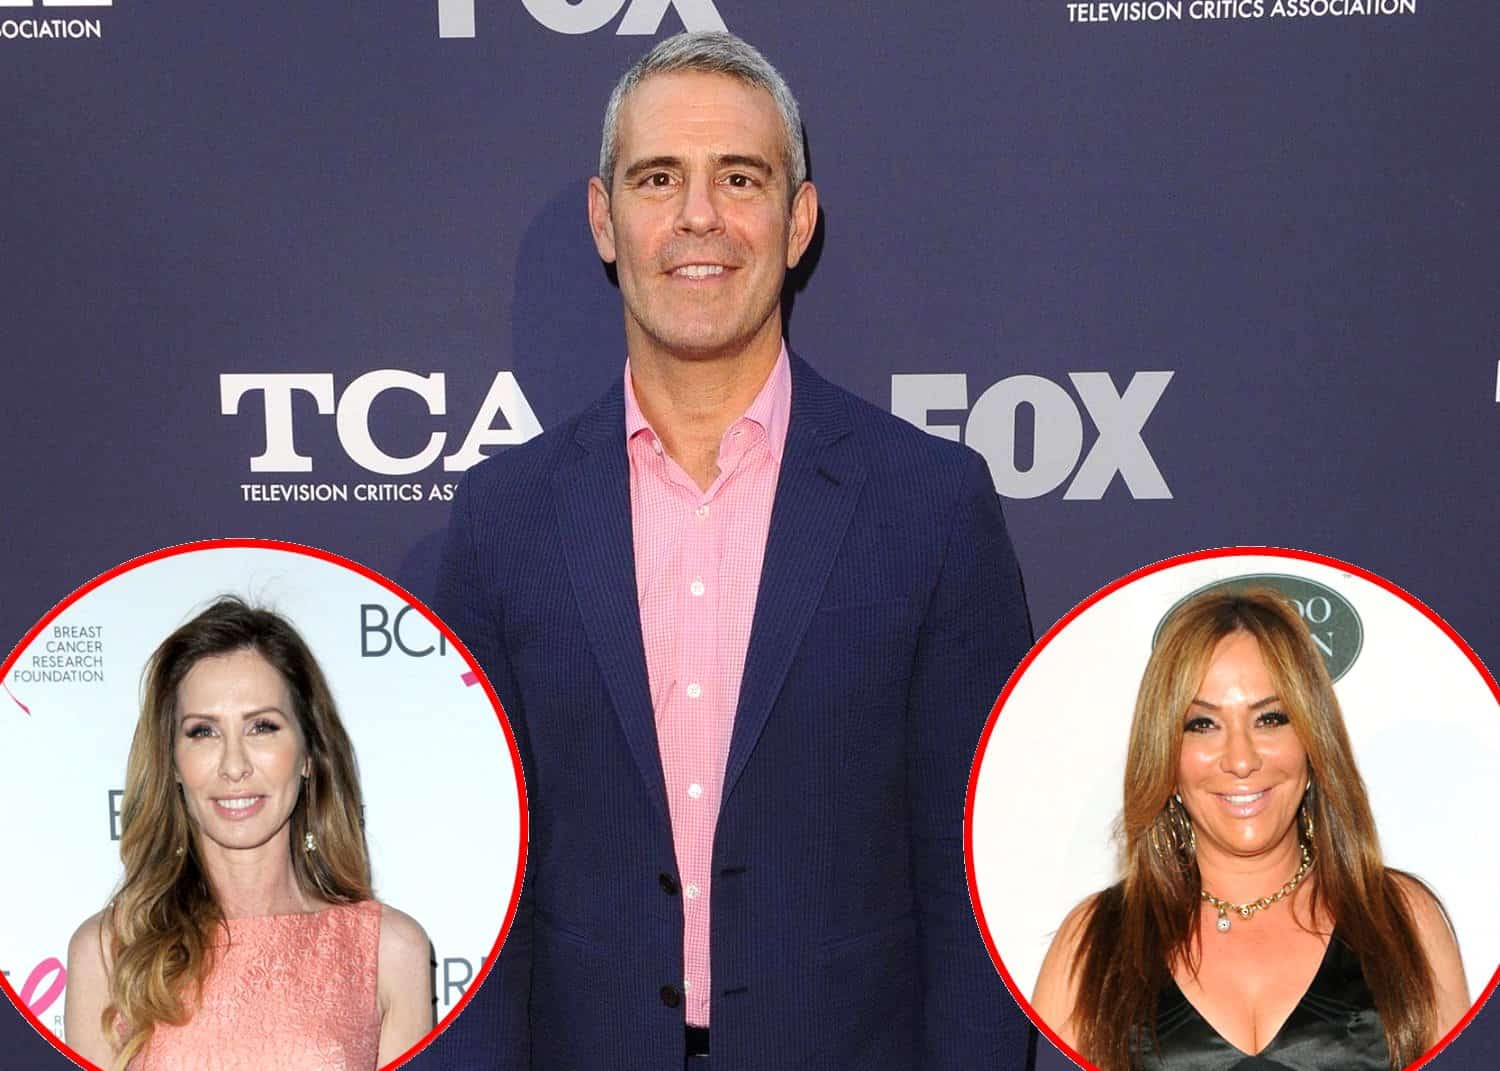 RHONY Andy Cohen talks Carole Radziwill and Barbara Kavovit